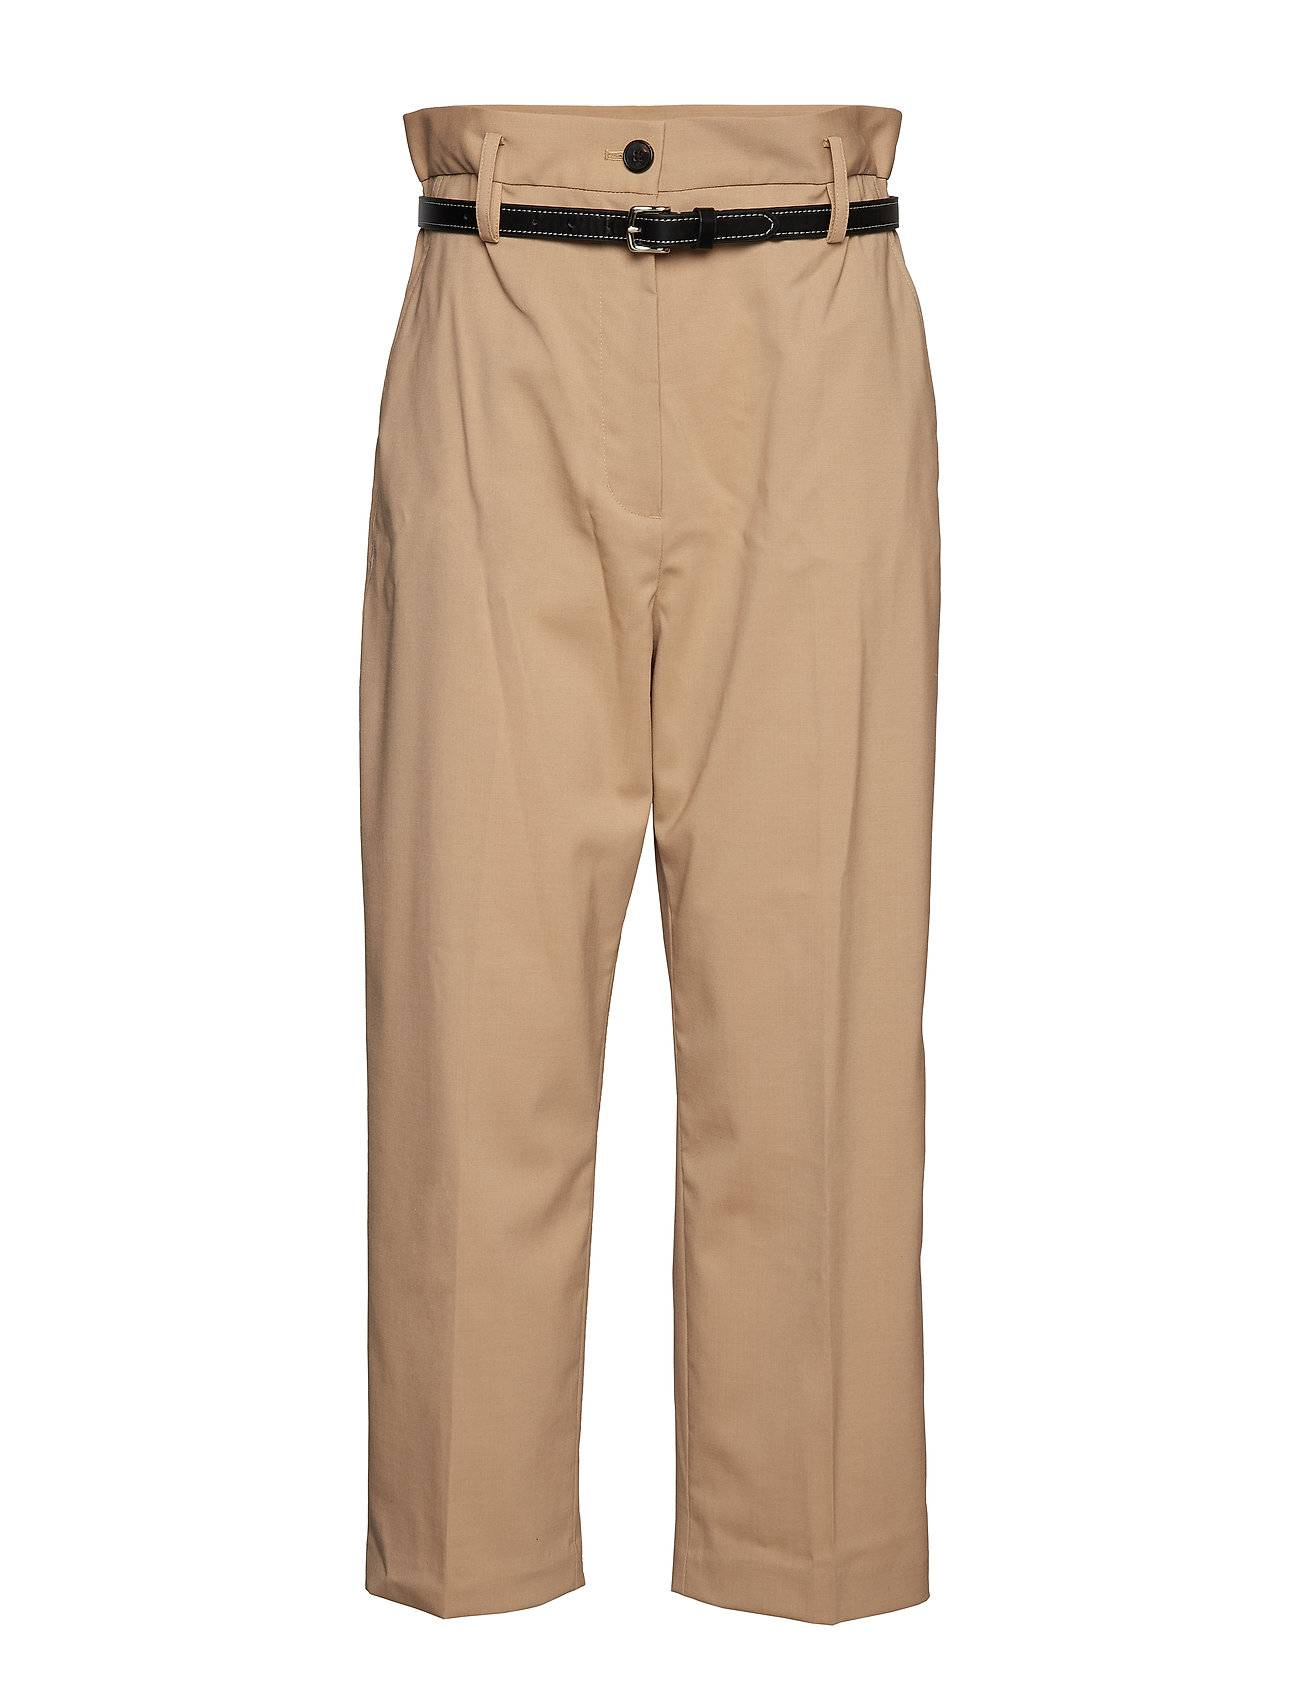 3.1 Phillip Lim Paper Bag Wool Cropped Pant W Leather Belt